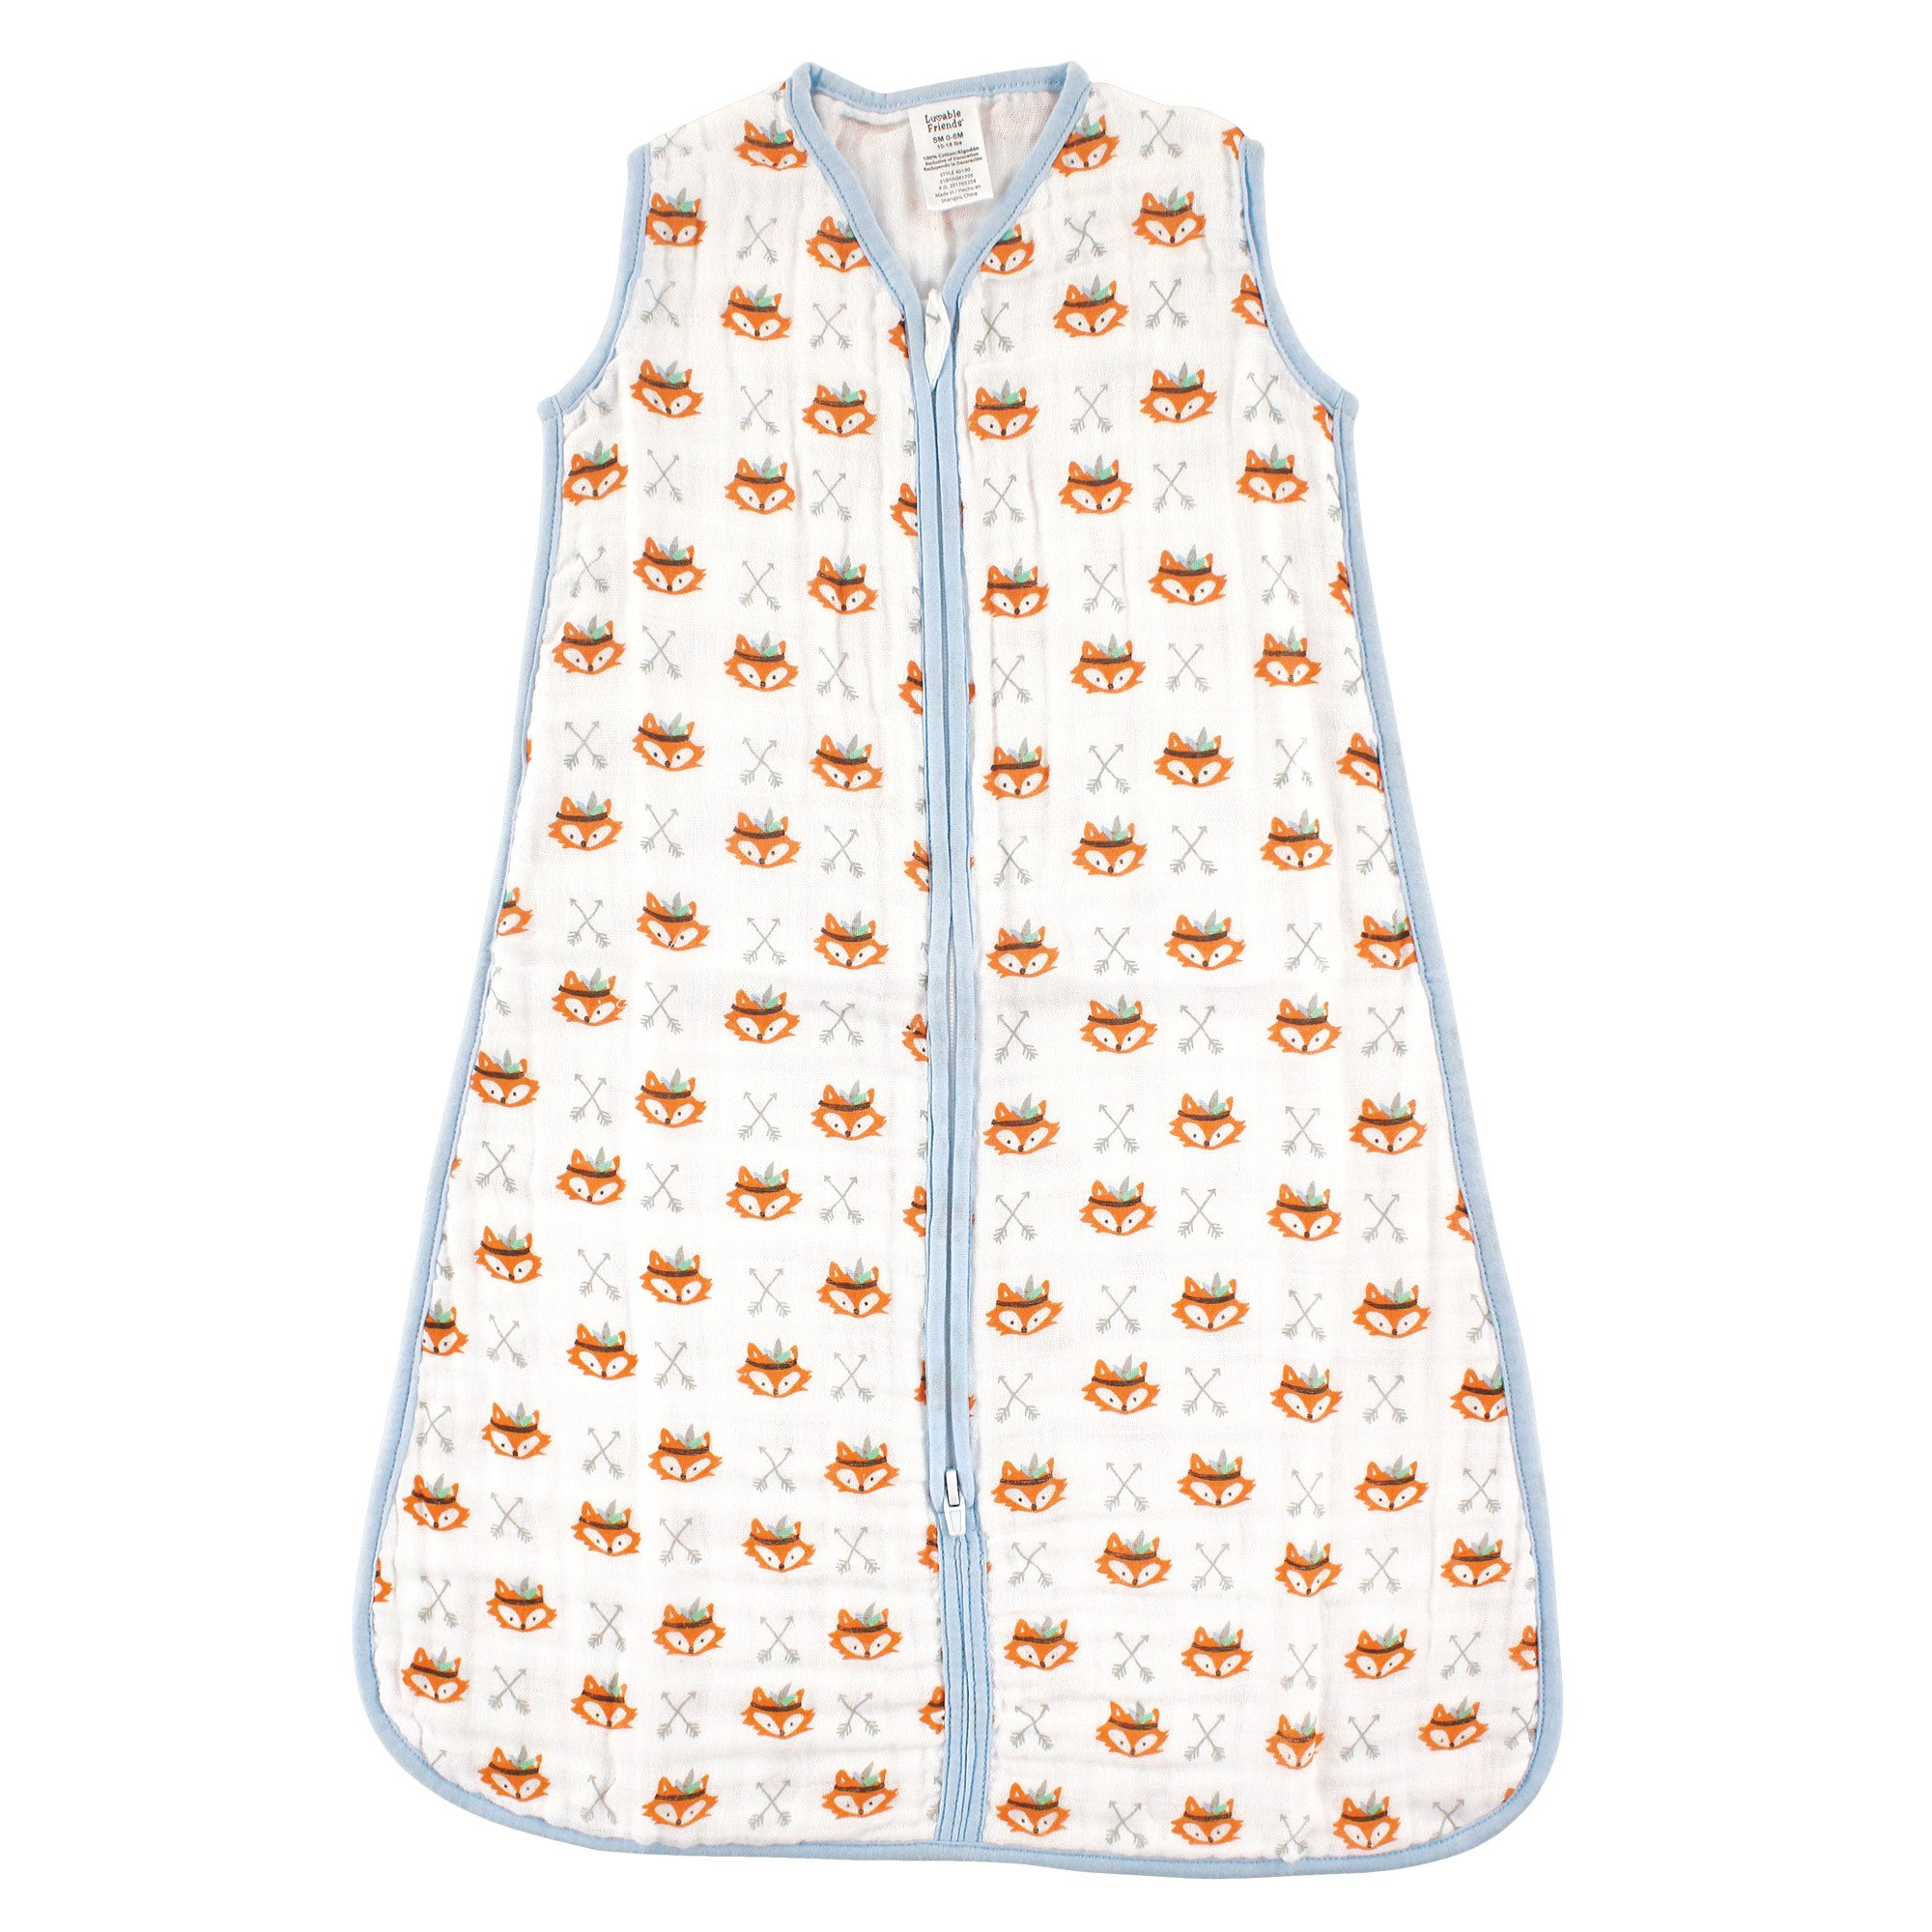 Luvable Friends Baby Infant Soft Muslin Jersey Cotton Safe Wearable Sleeping Bag, Fox, 12-18 Months